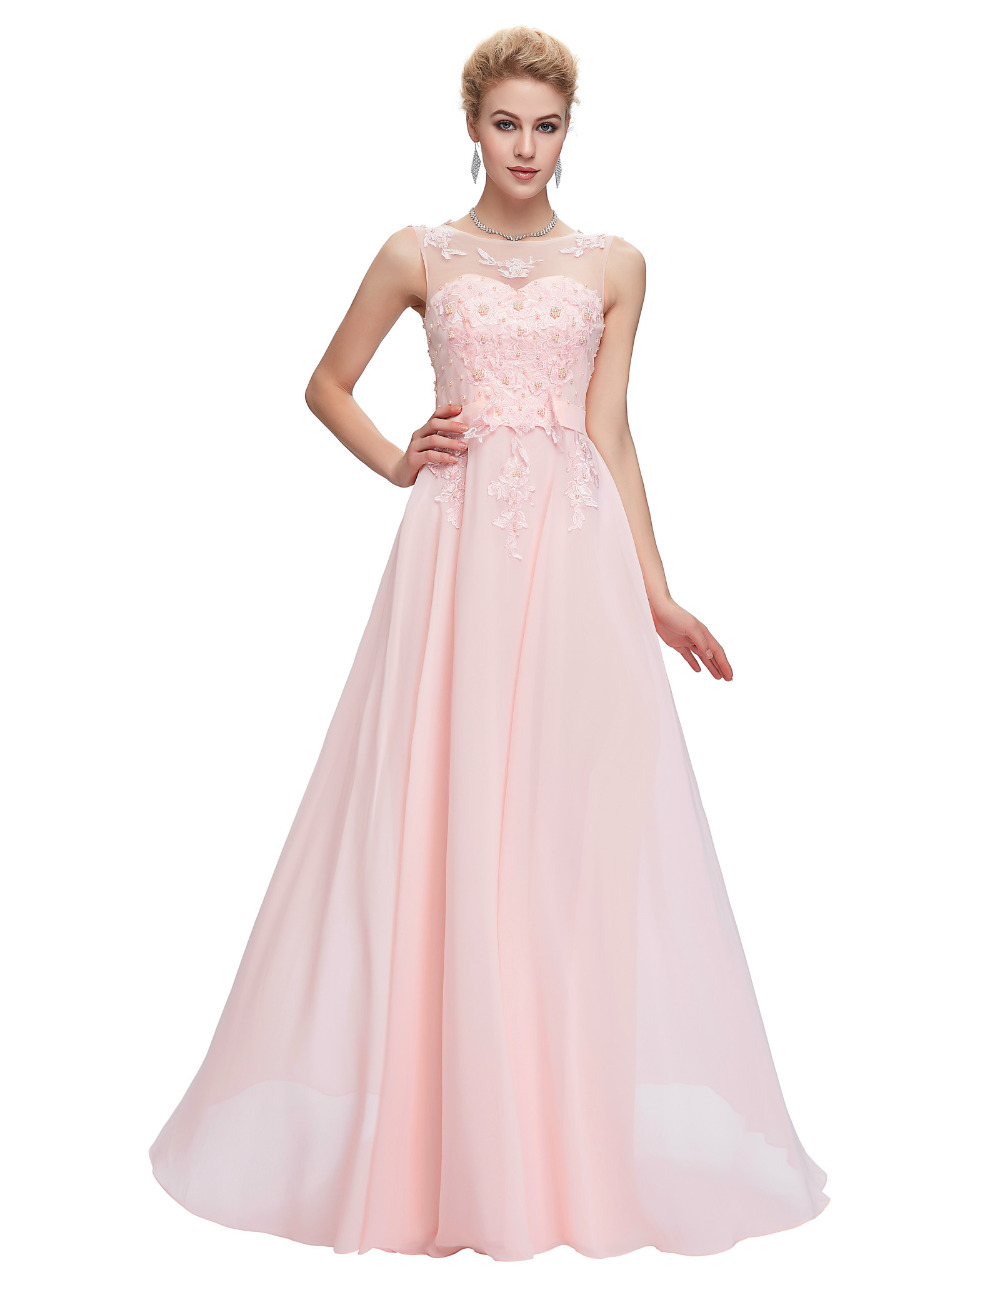 Plus size matron of honor dresses gallery dresses design ideas plus size matron of honor dresses gallery dresses design ideas plus size matron of honor dresses ombrellifo Images